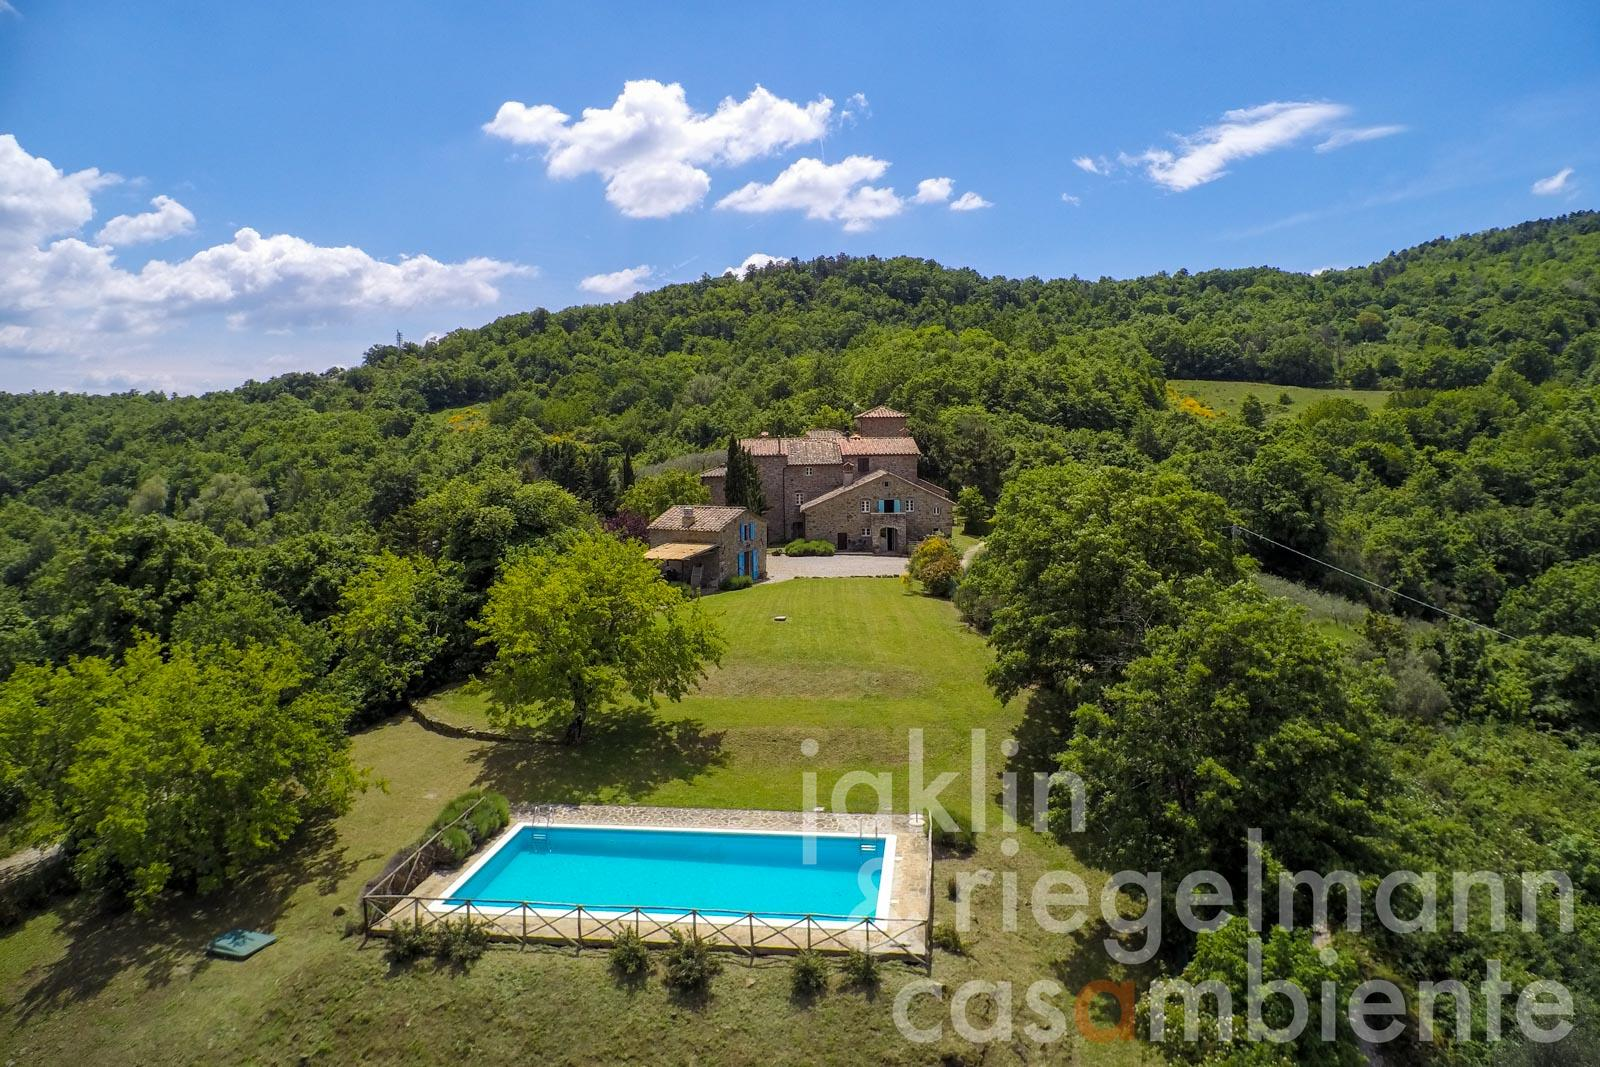 Restored stone property, attached but private, in a medieval hamlet with views, garden and pool